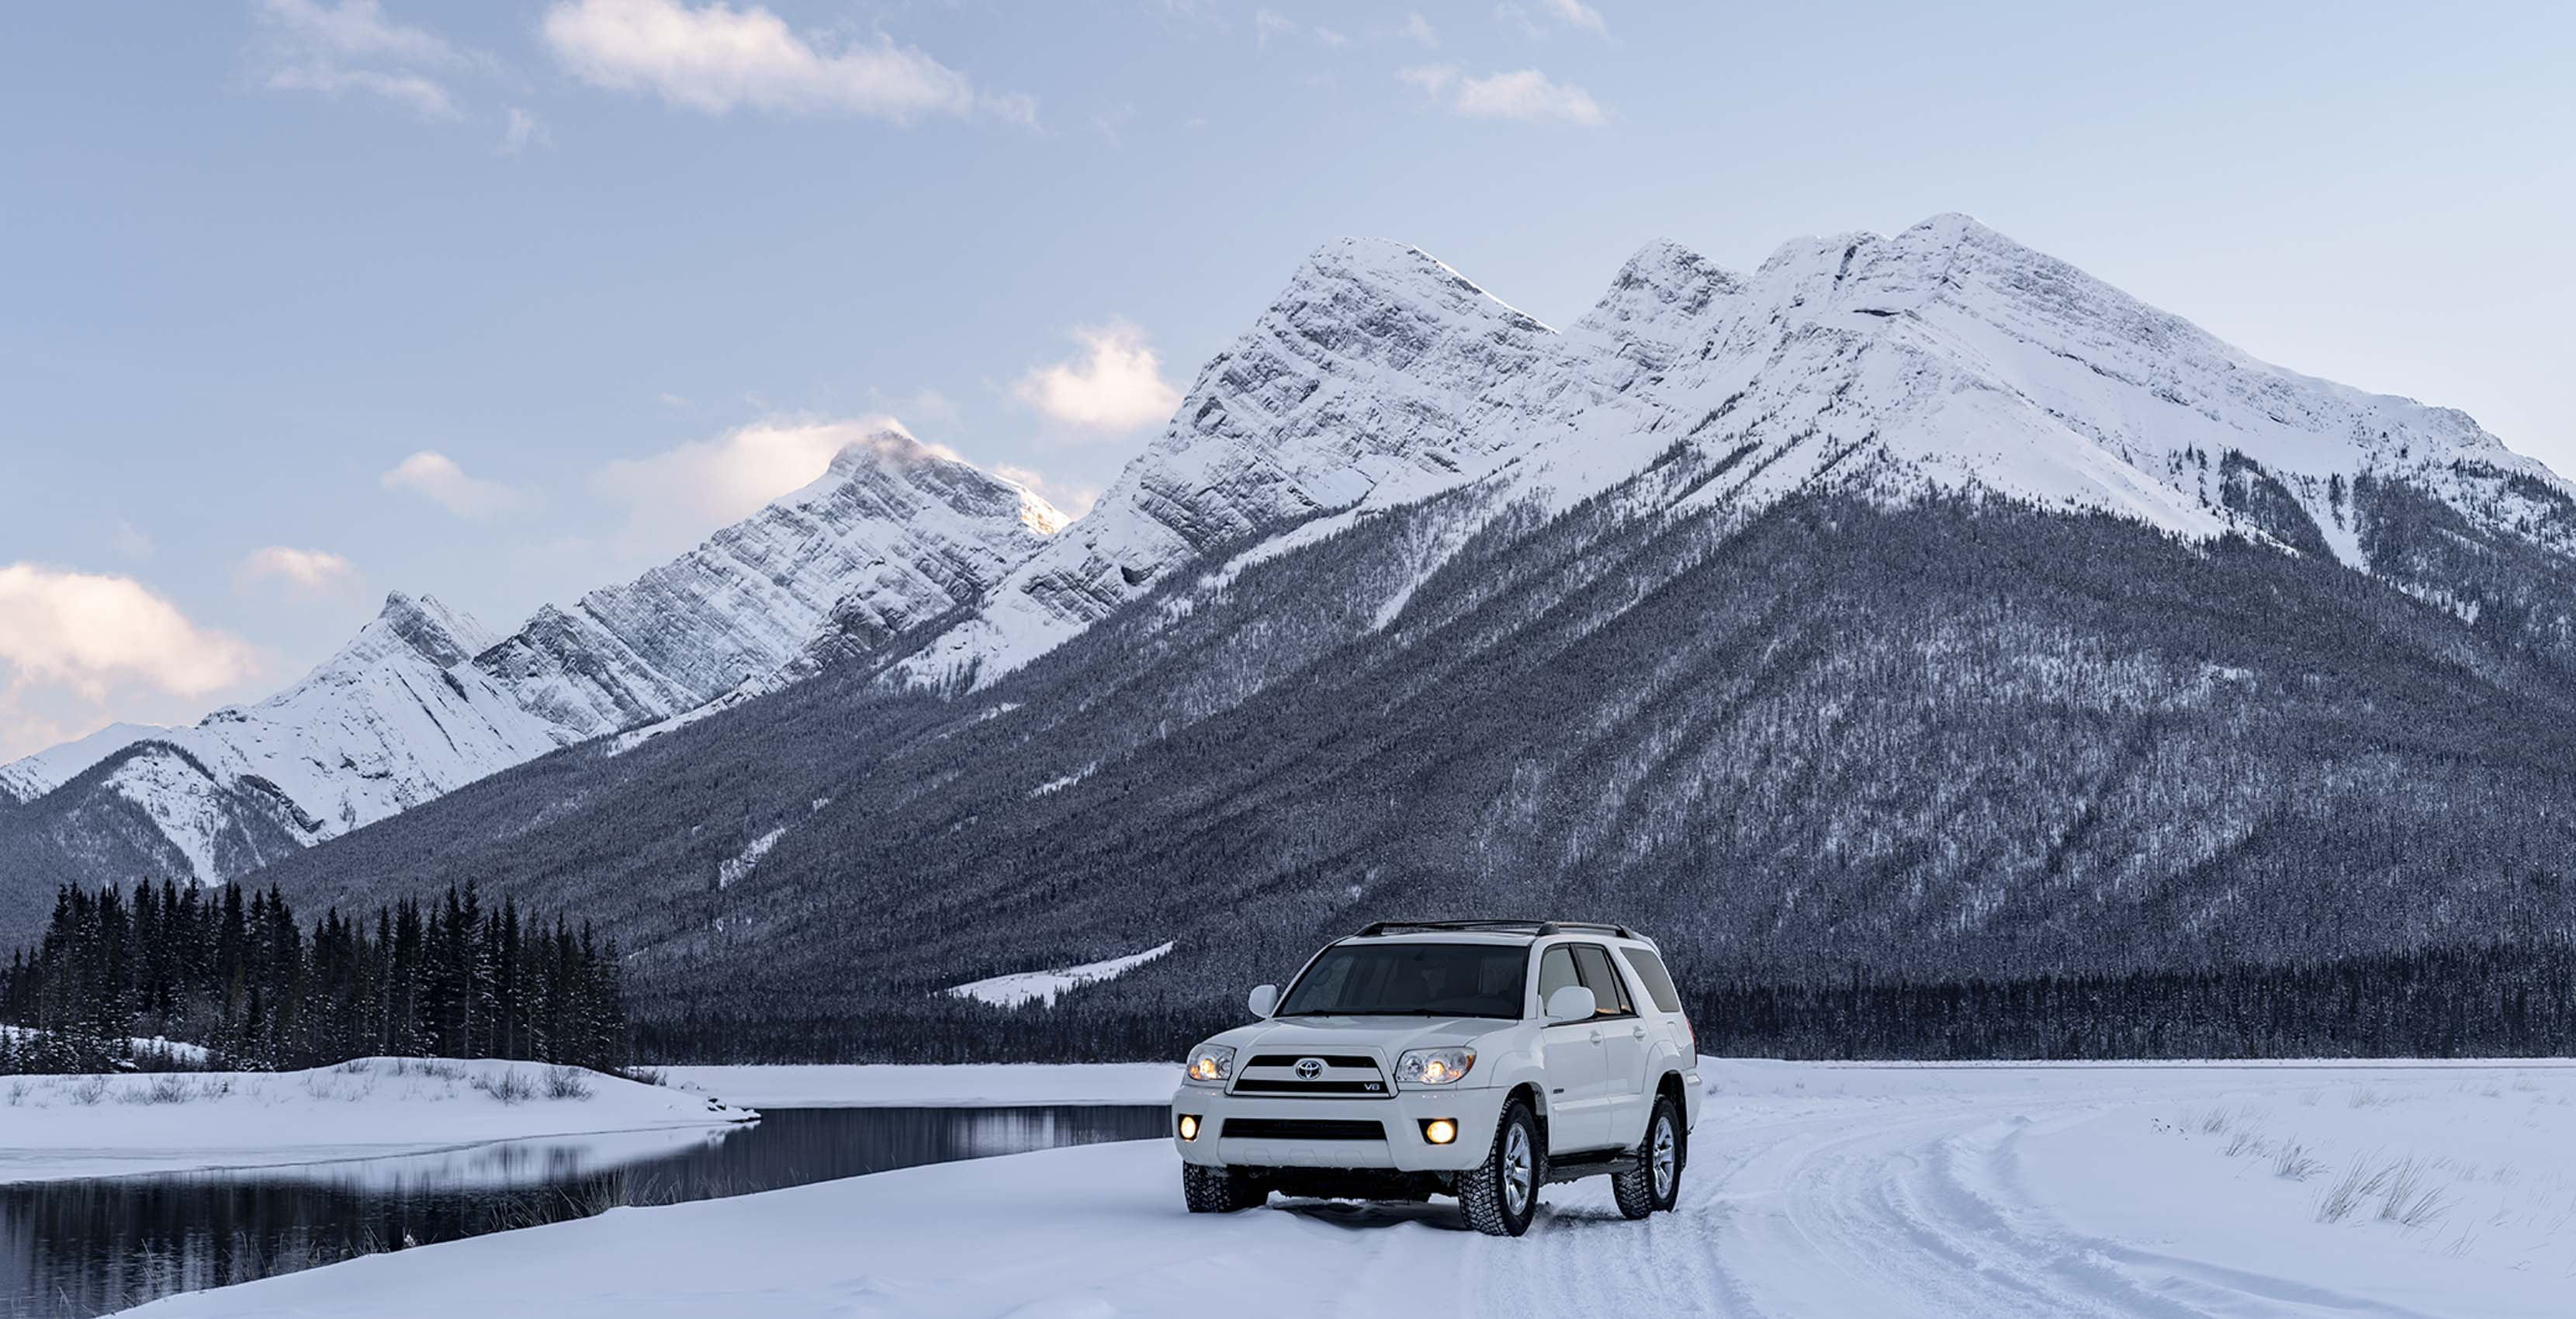 Toyota 4 runner winter at spray lakes Canmore Kananaskis Alberta Car photographer